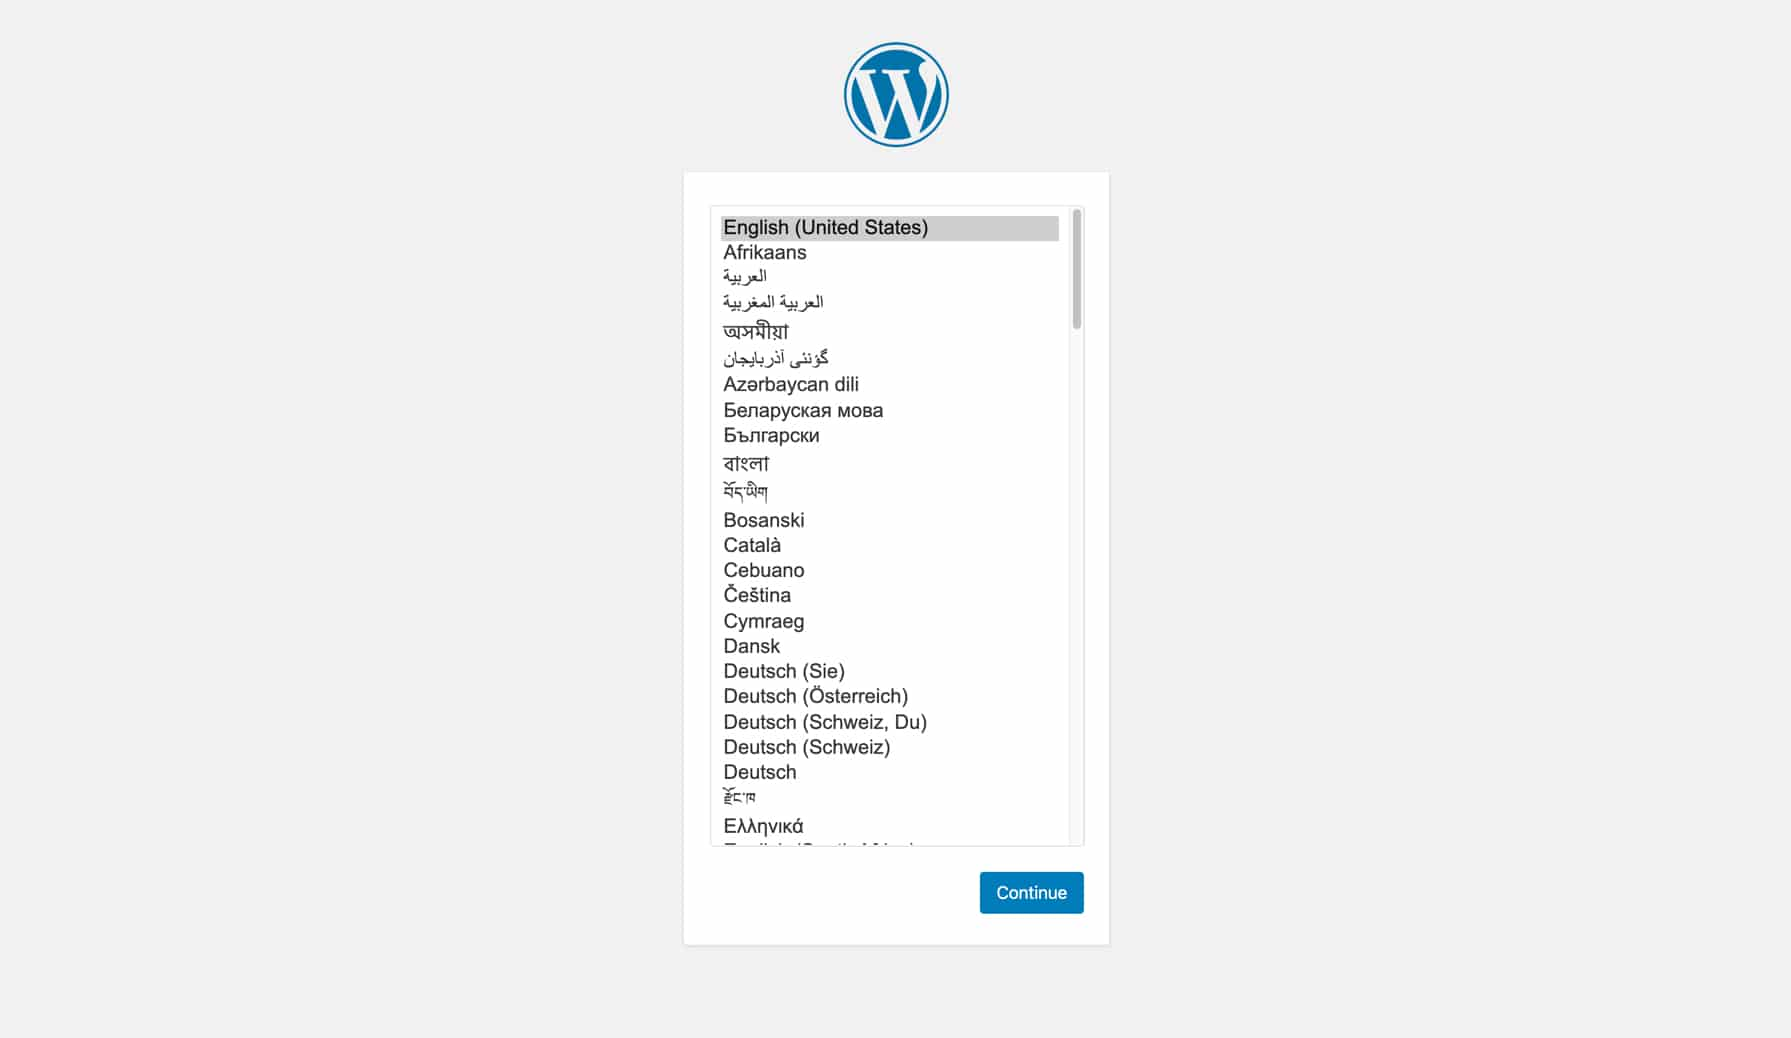 Configure the new installation of WordPress.